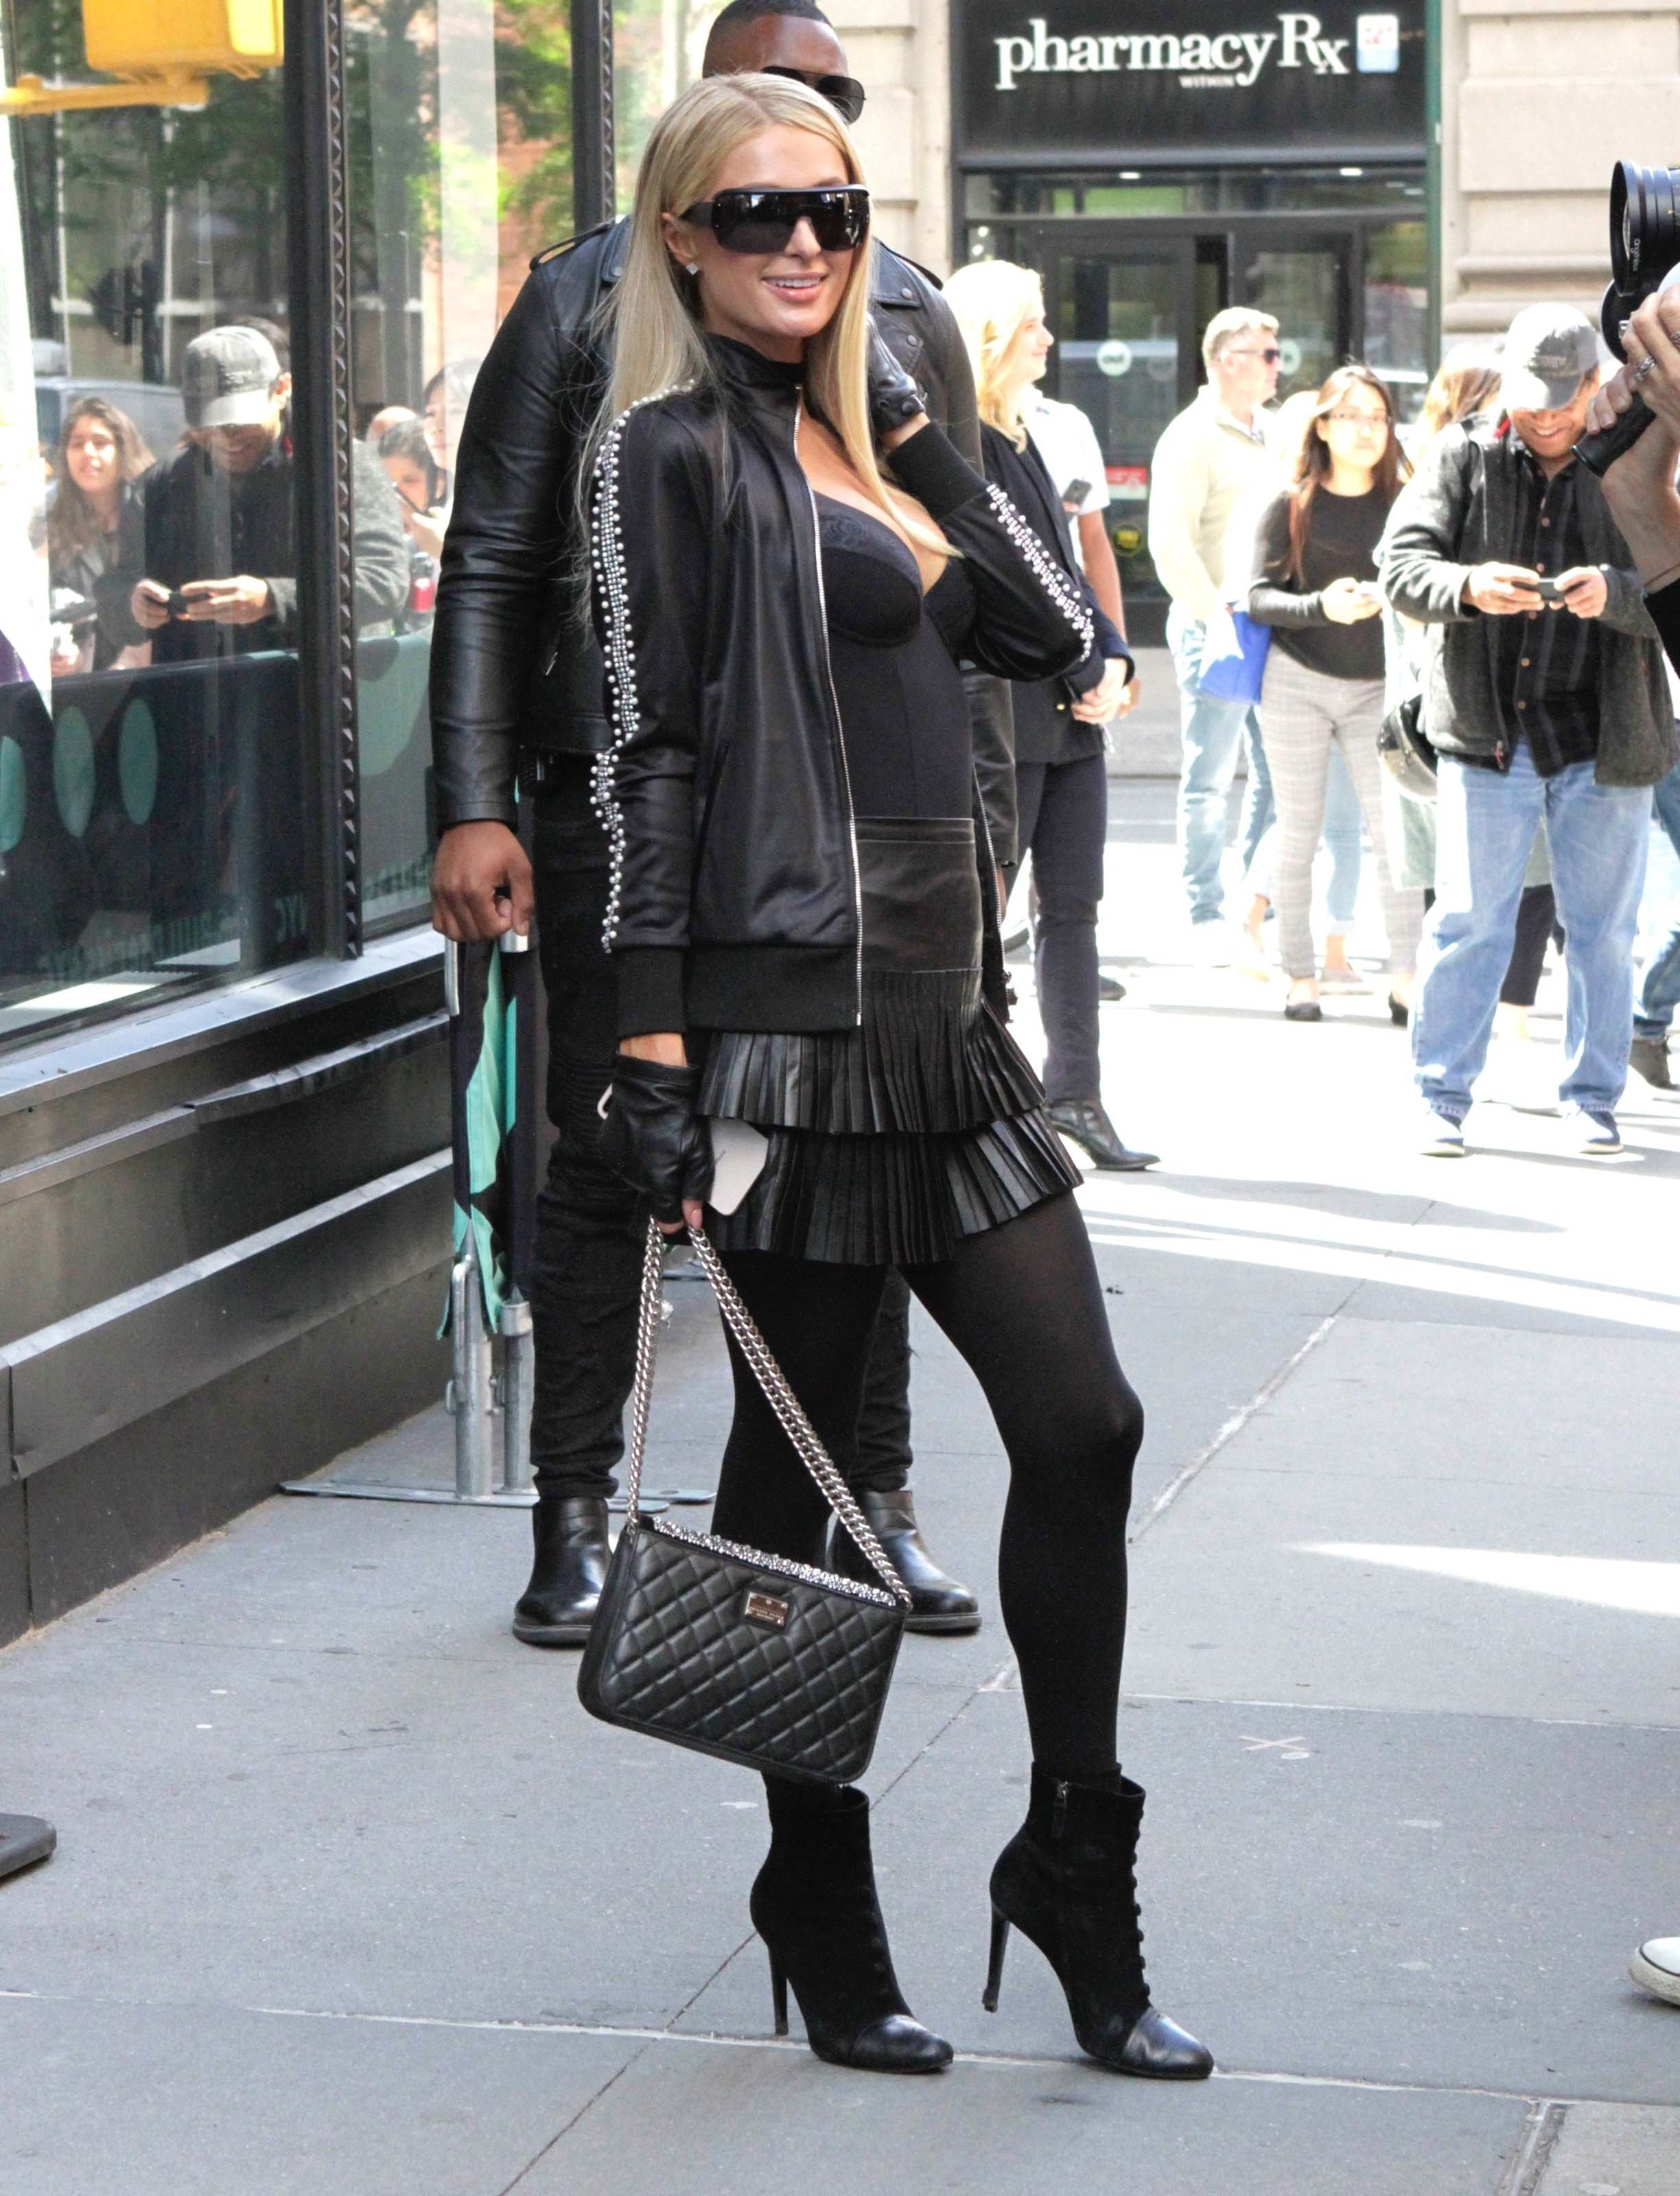 Paris Hilton arrives at the build series